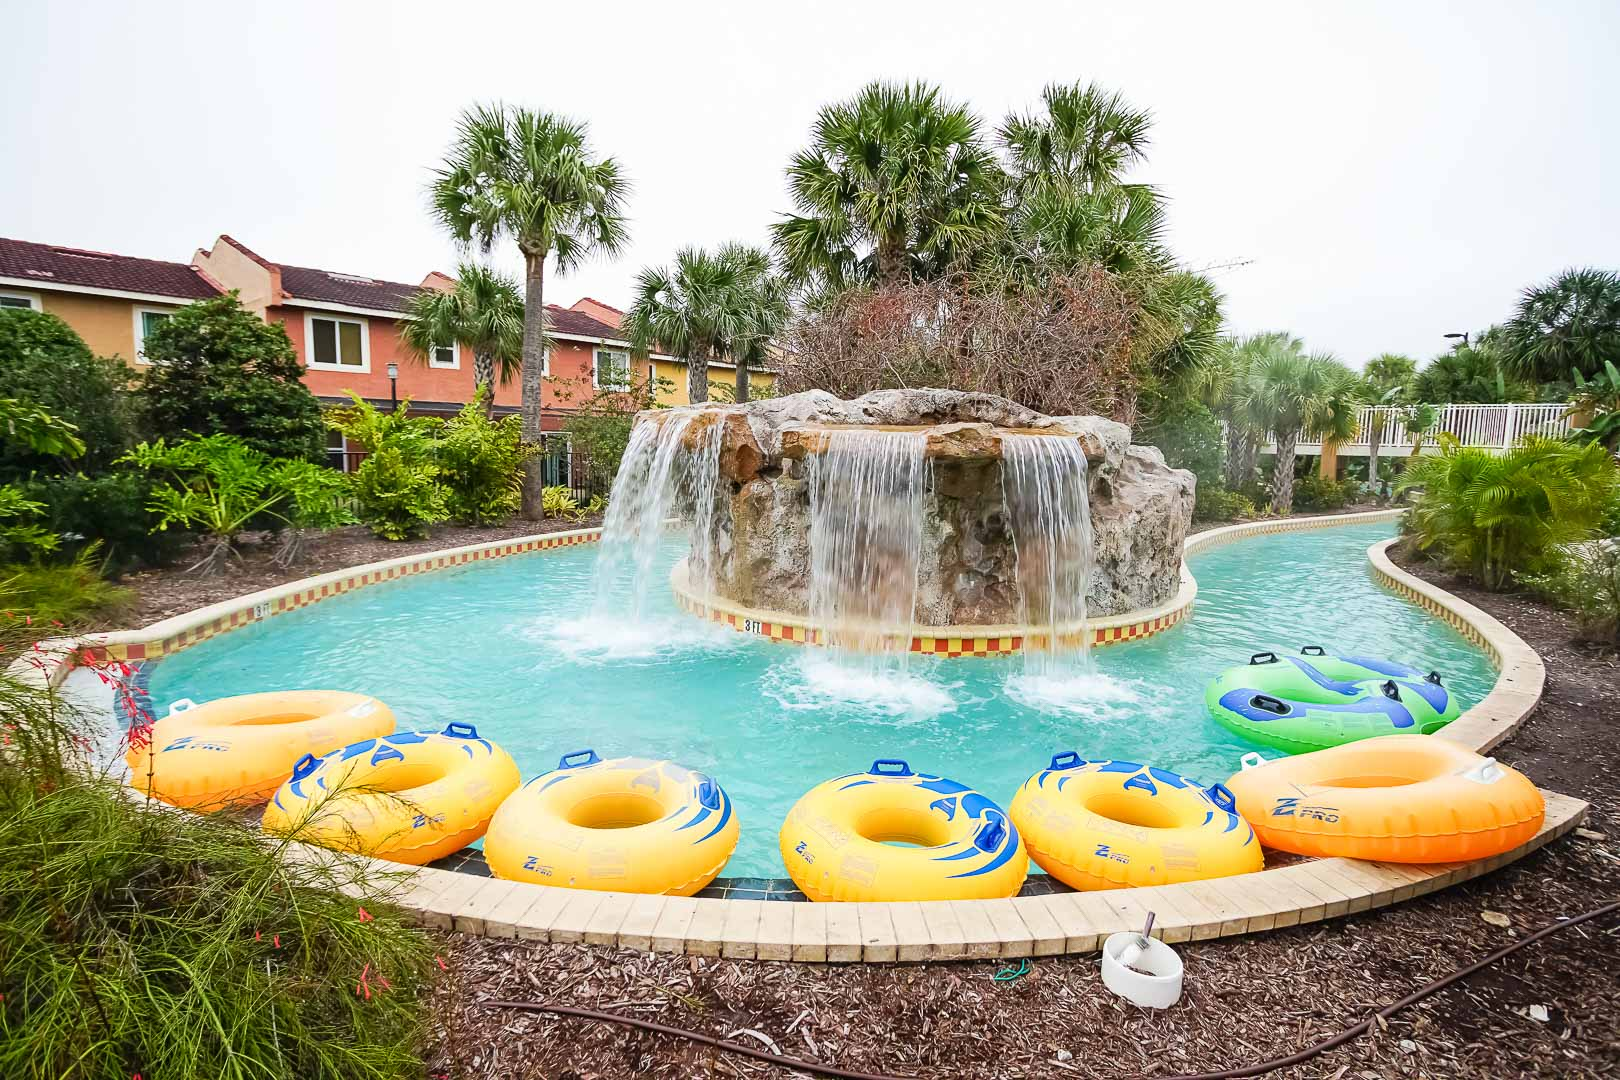 A colorful view of the outdoor lazy river pool at VRI's Fantasy World Resort in Florida.